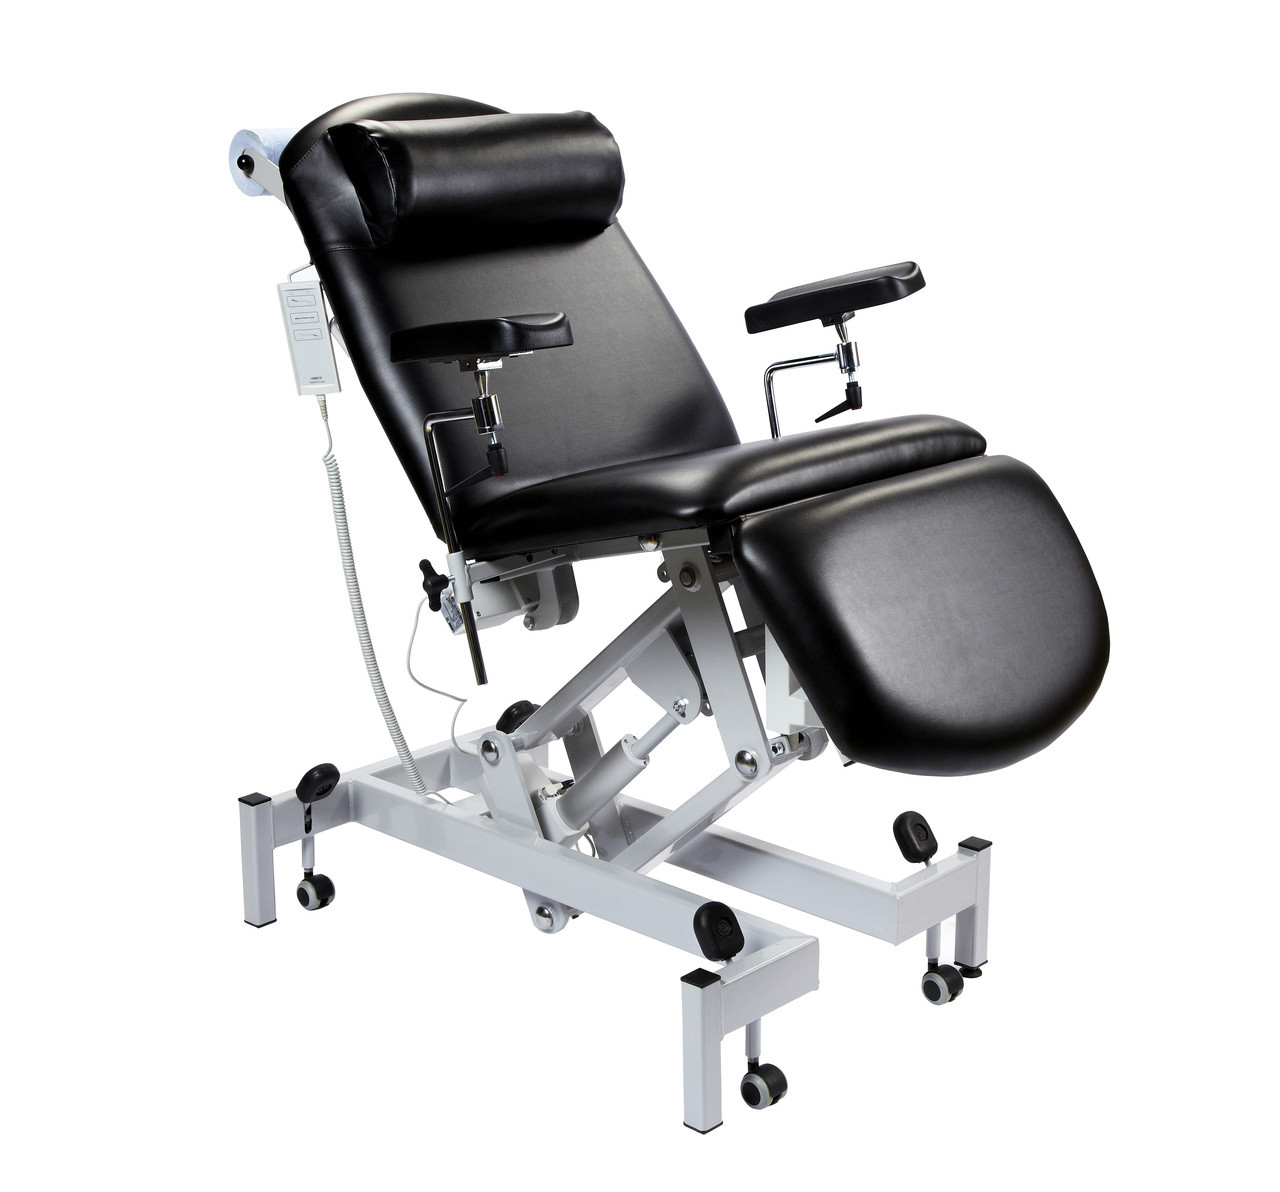 minimal chair height stand test gym bench press sunflower fusion phlebotomy with electric